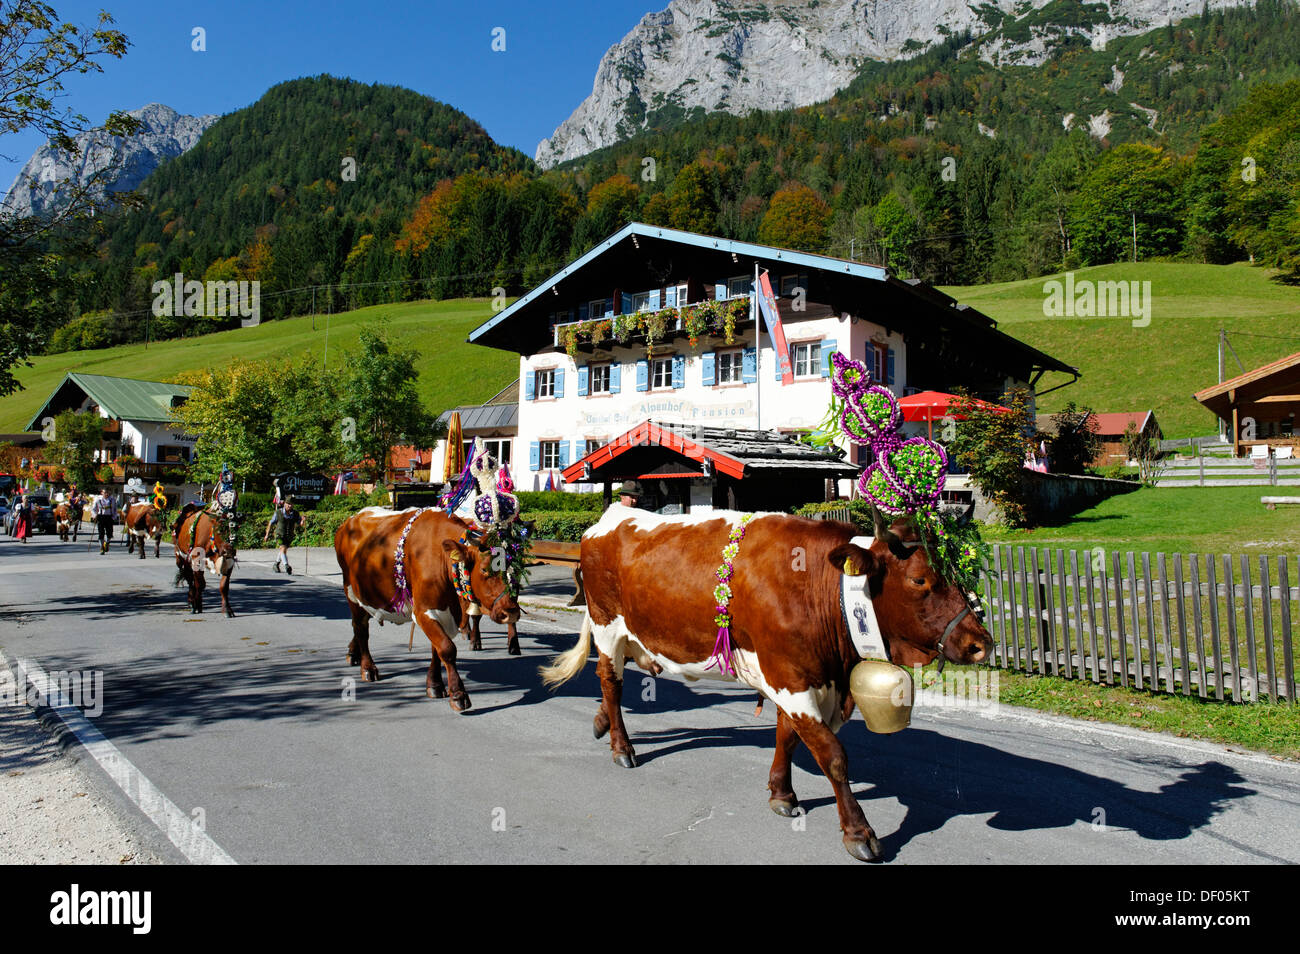 Traditional Almabtreib cattle drive, Halsam, Berchtesgadener Land District, Upper Bavaria, Bavaria, Germany Stock Photo